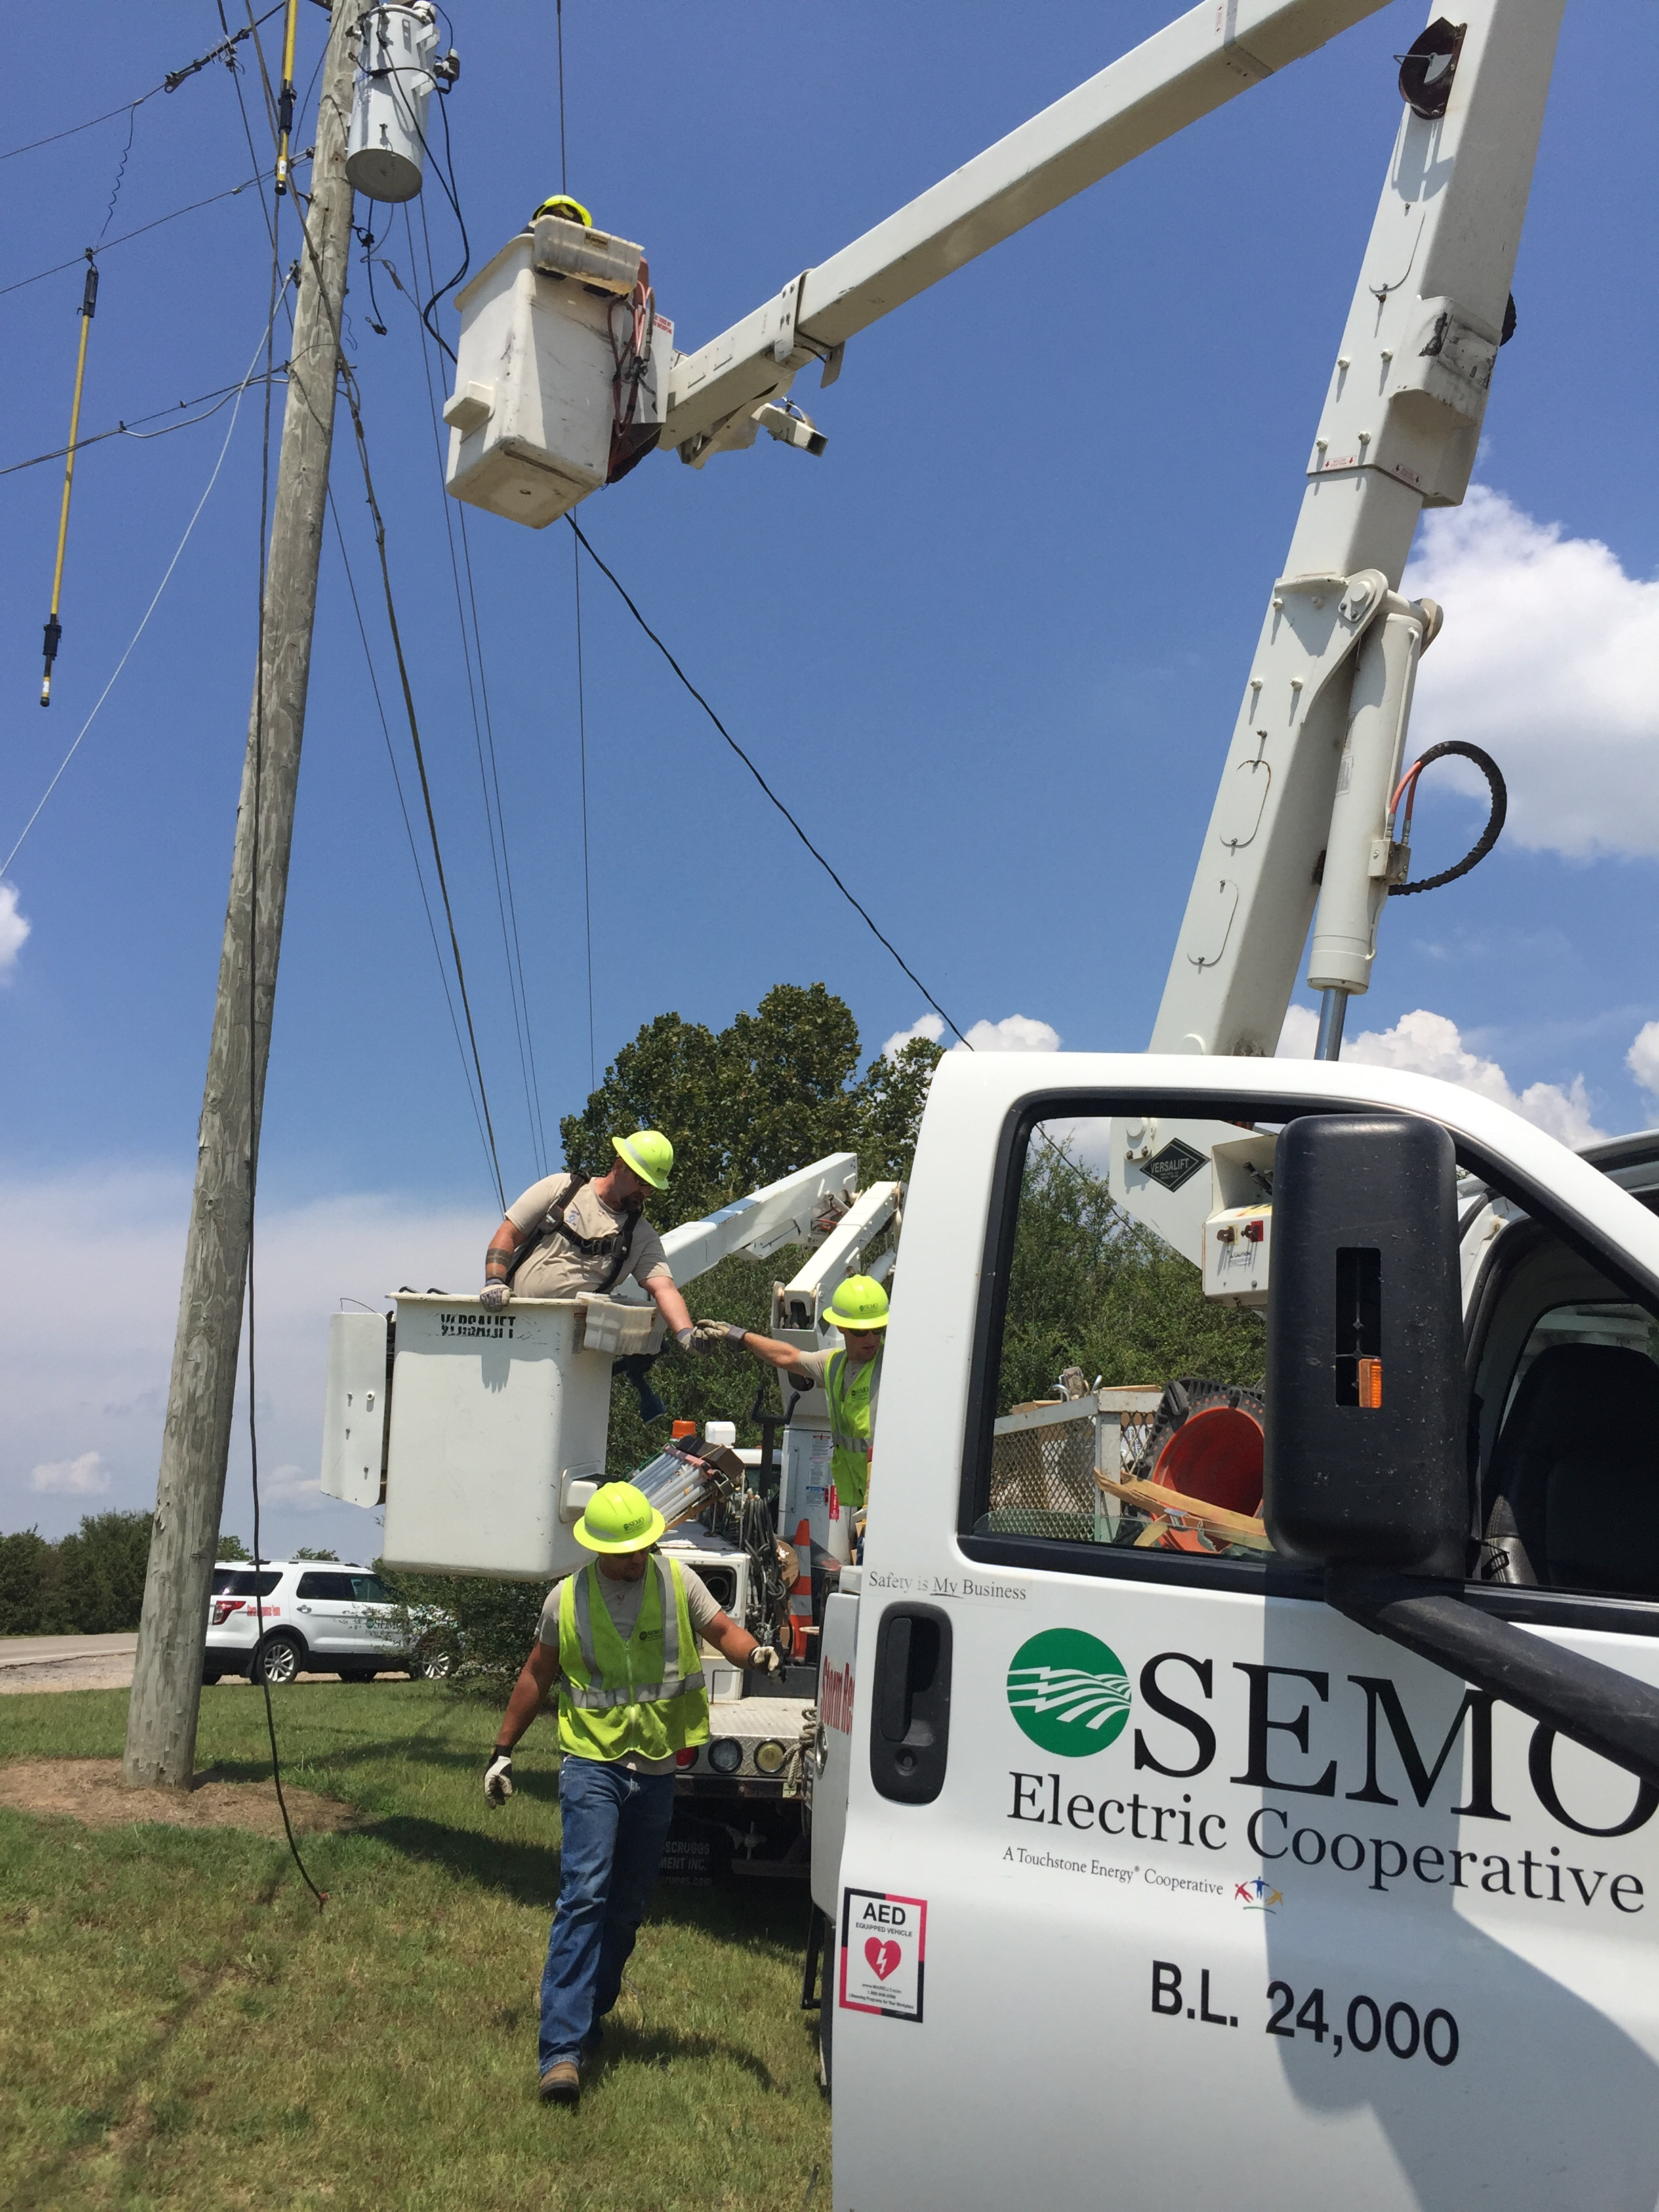 Gosemo Fiber To Install New Circuits For Christmas Lights Root Electric Services The Dream Of High Speed Internet Semo Cooperatives Member Owners Is Quickly Becoming A Reality As We Take Small Steps